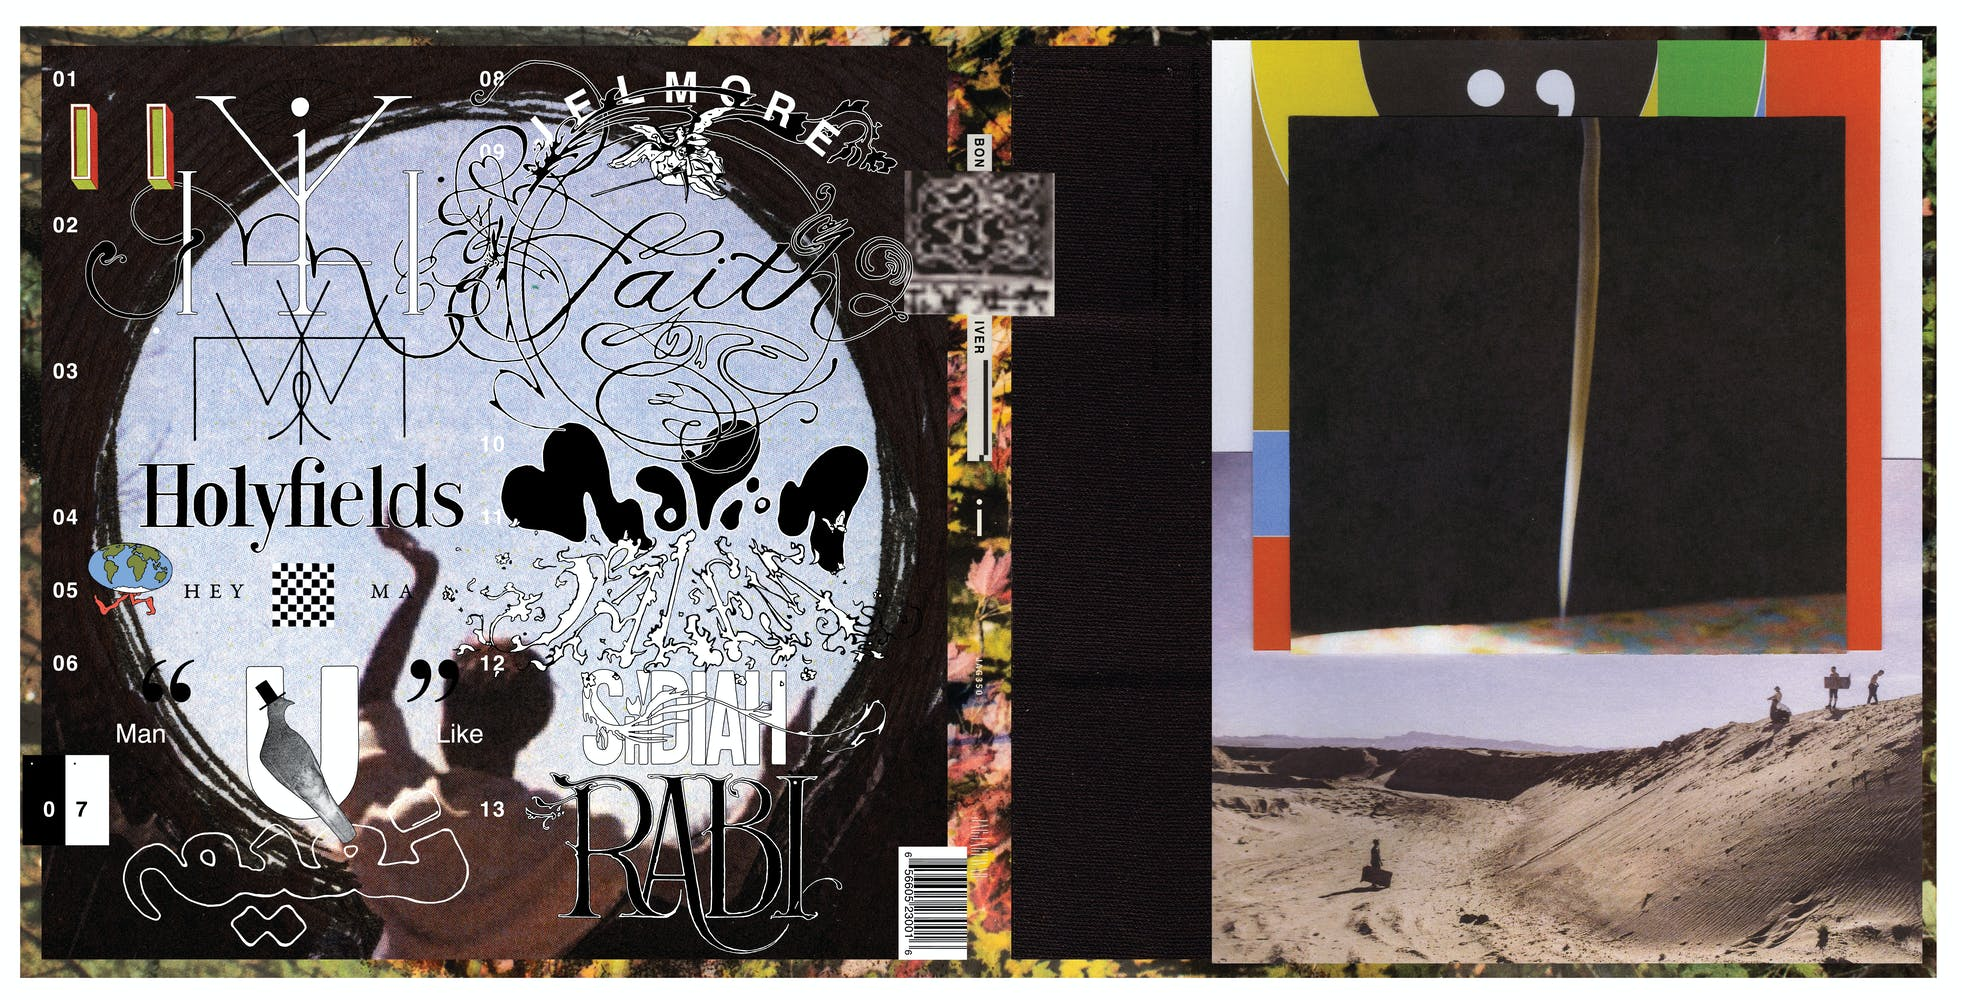 Front and back cover of vinyl record case featuring collaged images and colors